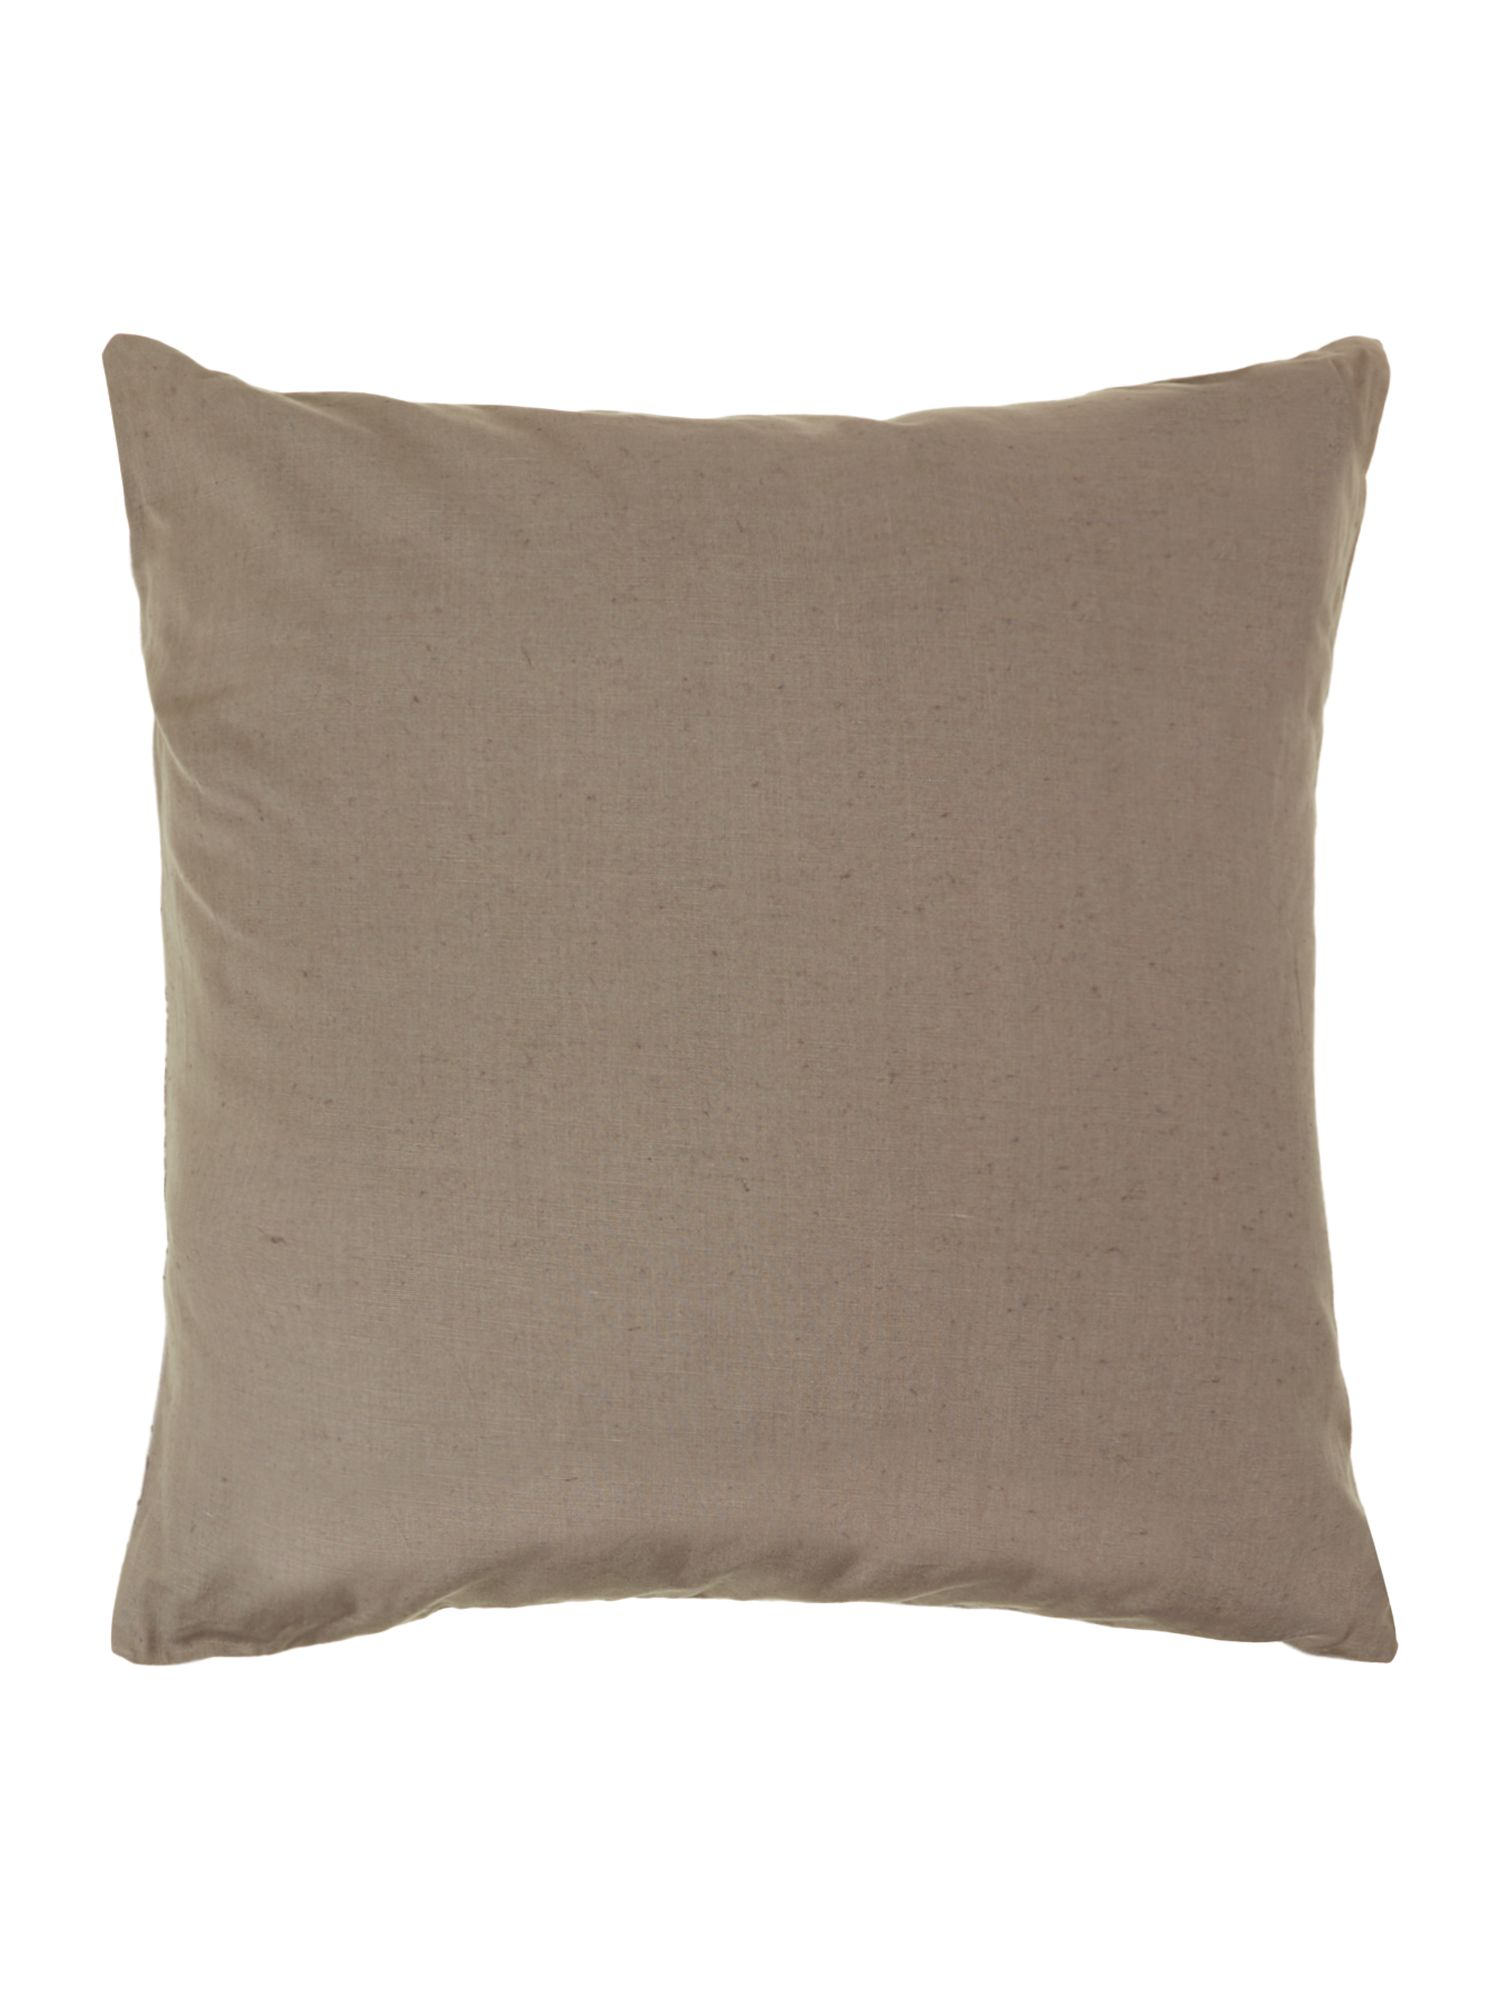 Oversized french cushion